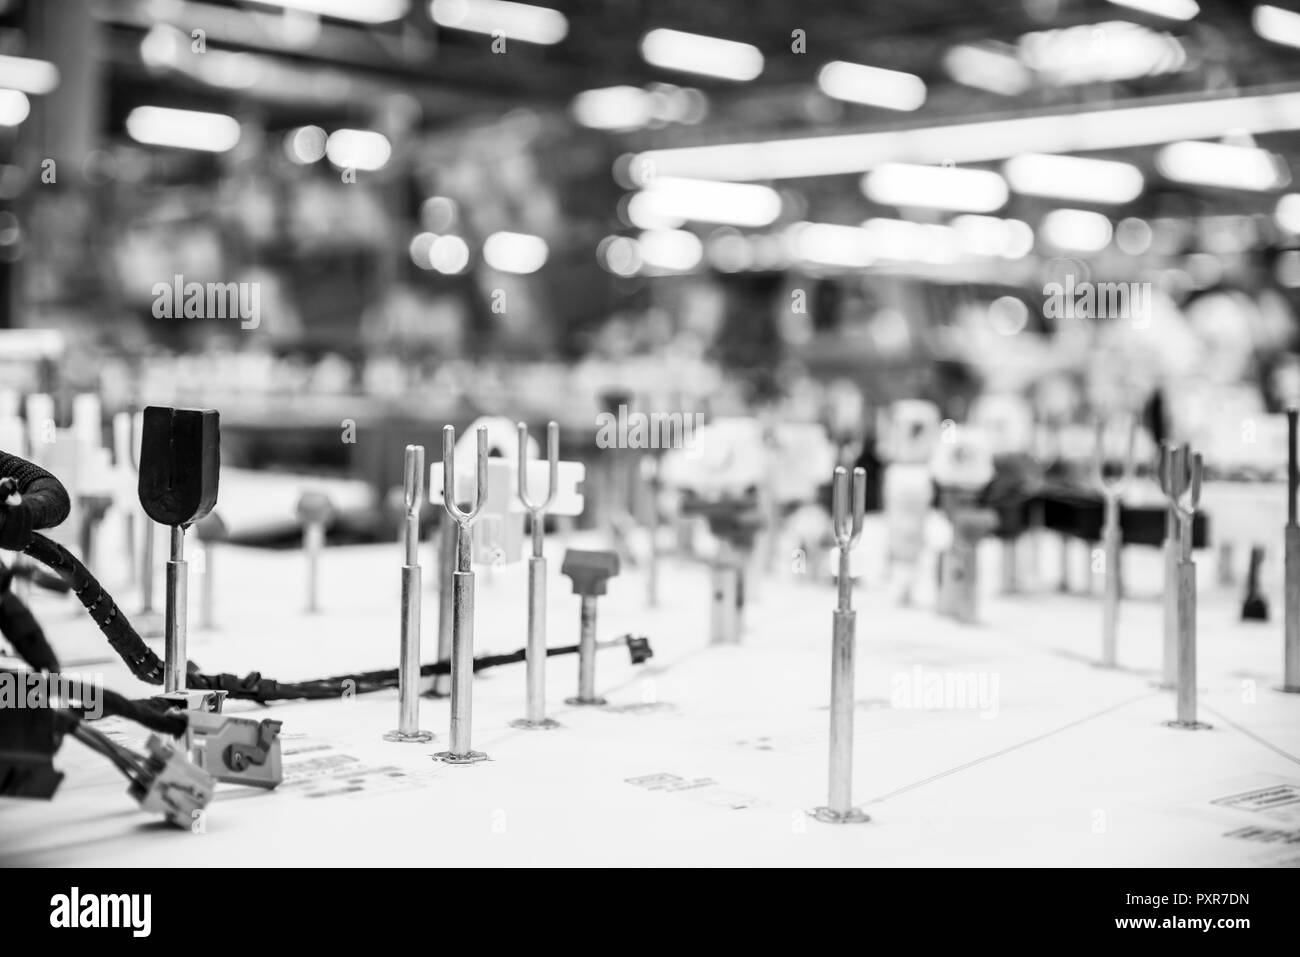 Automotive industry, manufacturing wiring harnesses. Monochrome industrial background with copy space Stock Photo